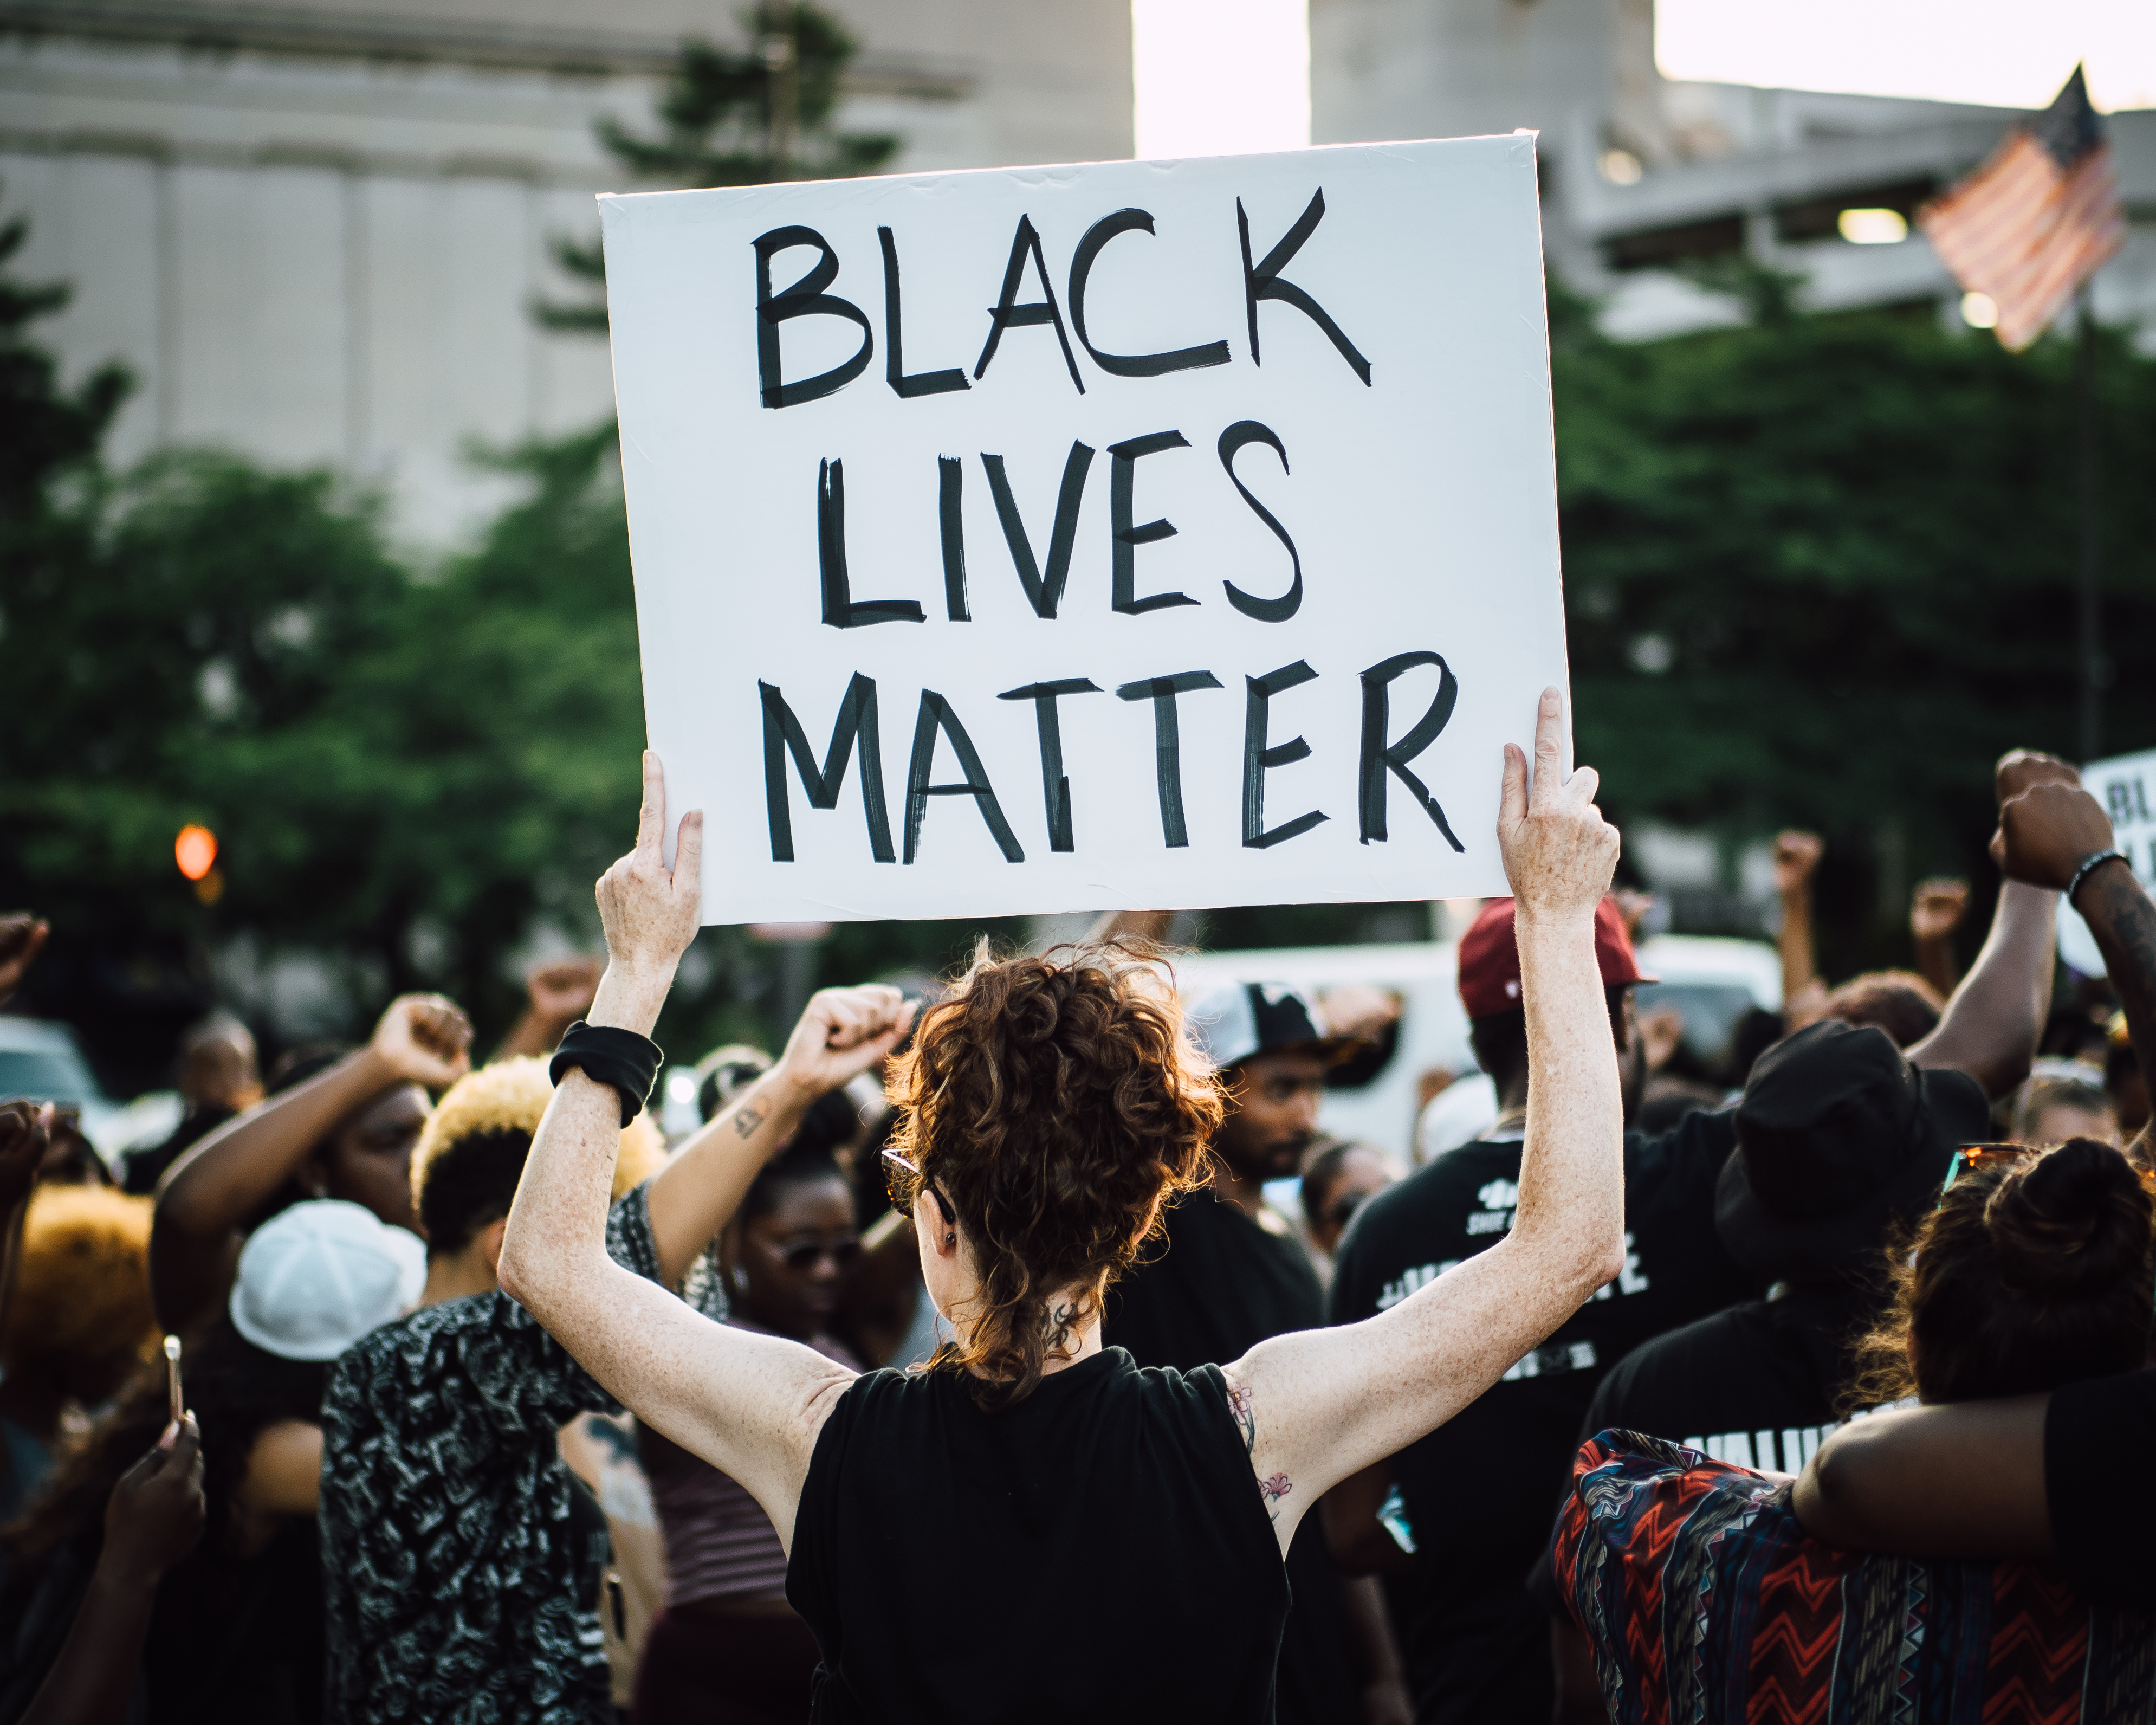 COVID-19 and Black Lives Matter Protests: Local Government Responses Restrict Rights, Increase Risk